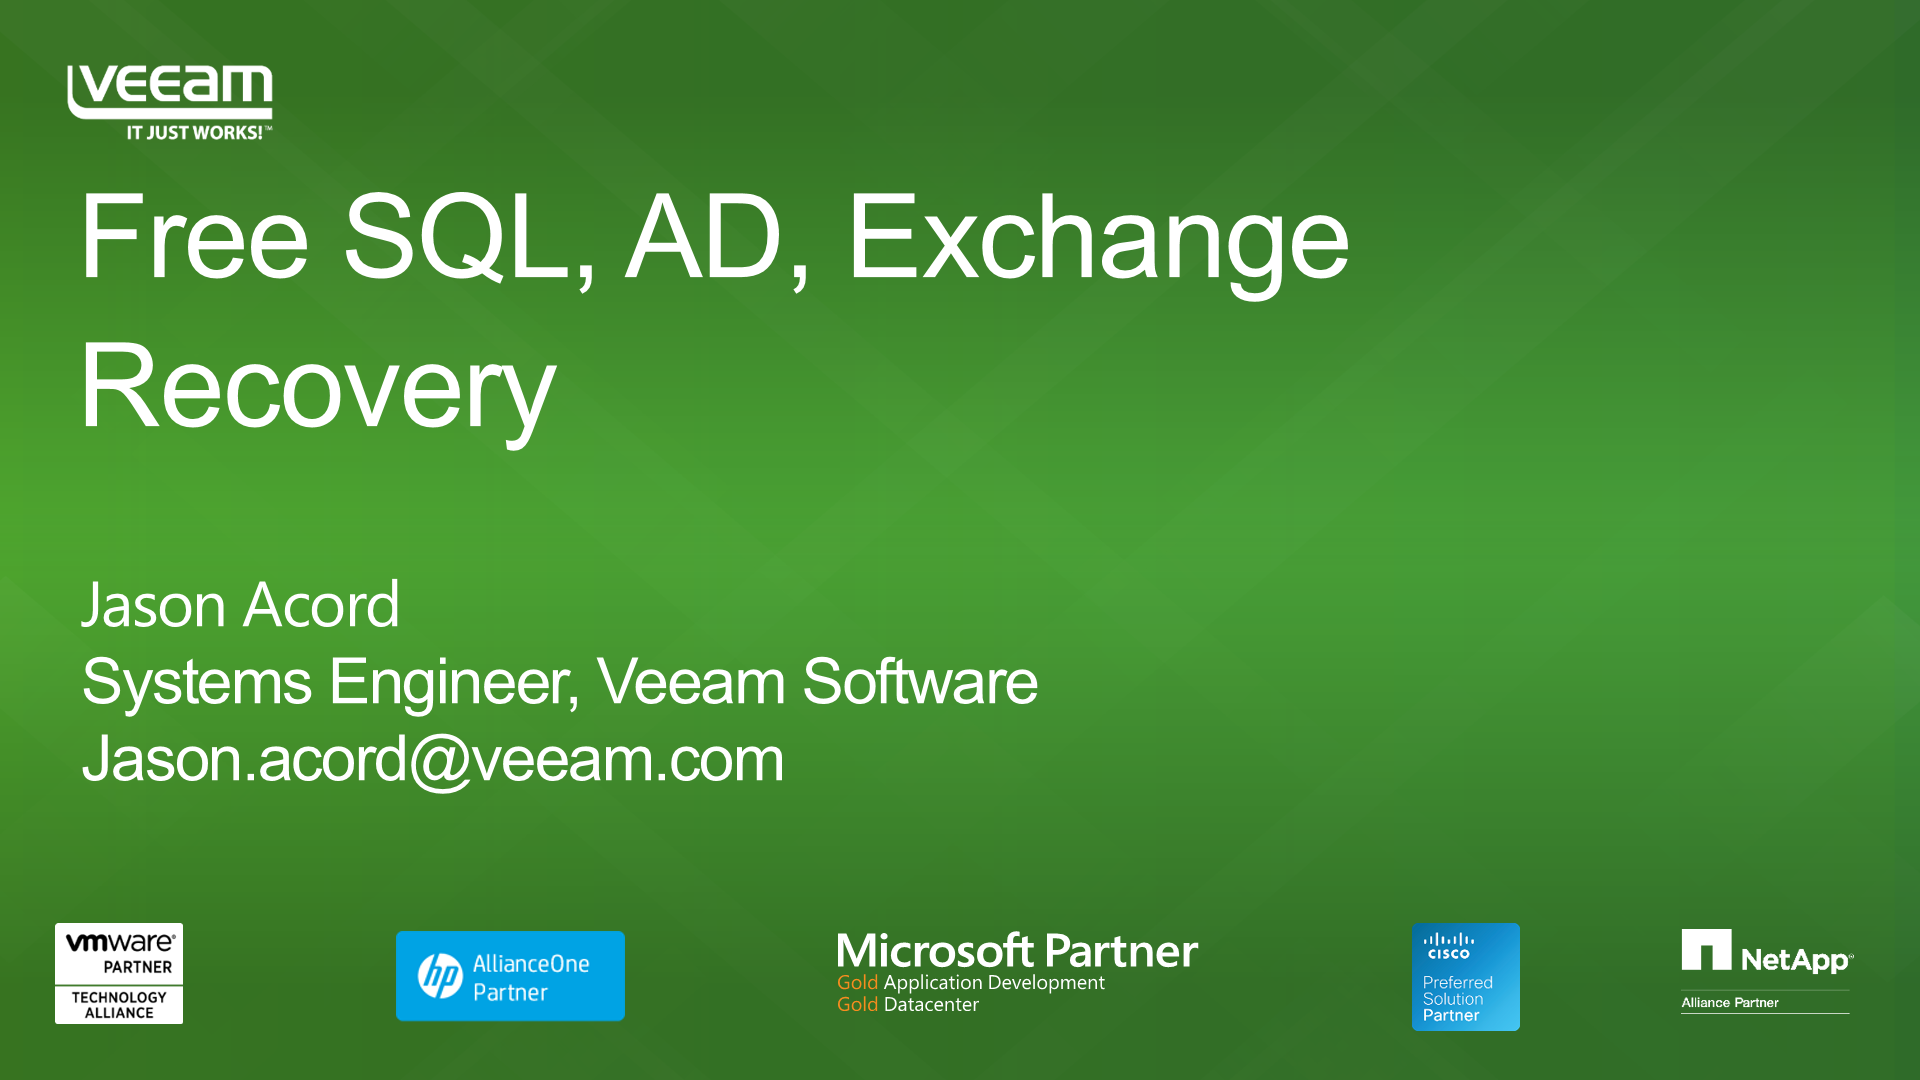 SQL, Active Directory, Exchange - Recover These Apps for FREE!